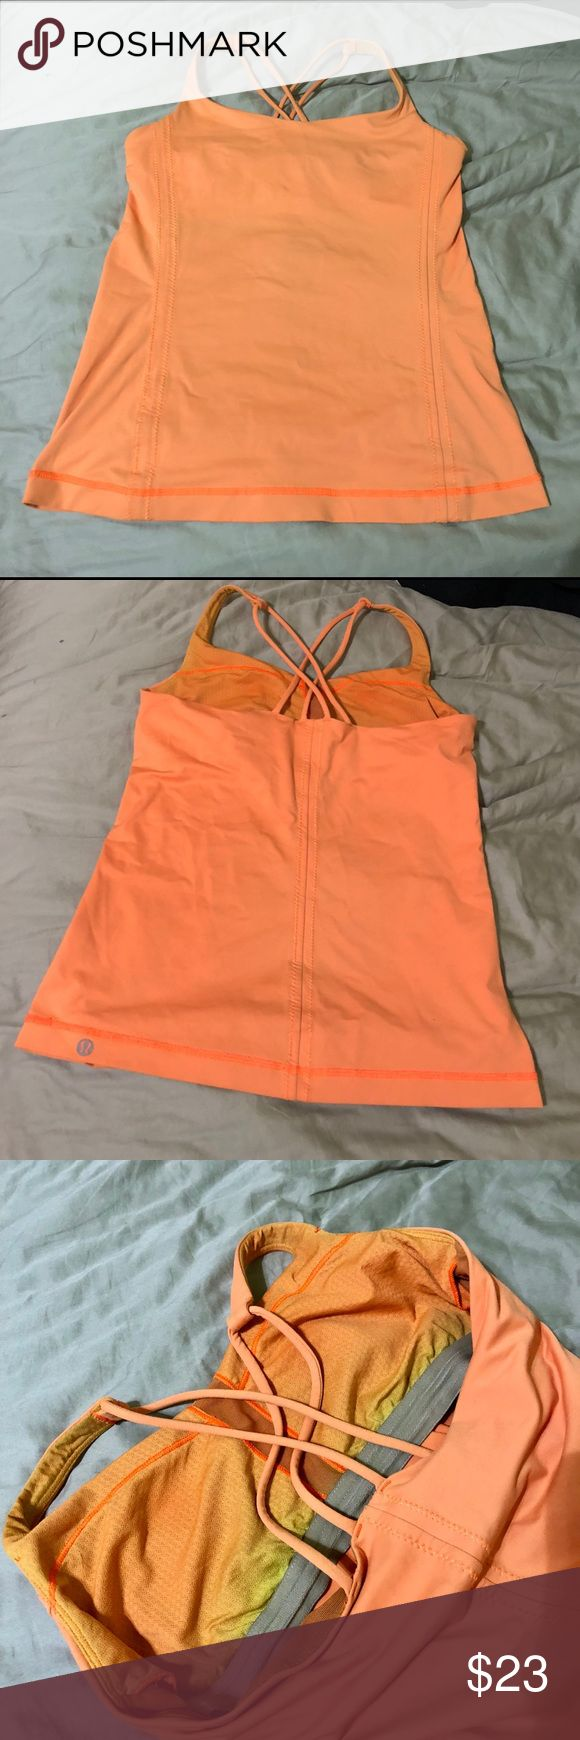 """Lululemon orange strappy top with shelf bra Lululemon orange strappy top with shelf bra. Well loved but in excellent condition, slightly faded on inside. Notice length, shirt was hemmed (I'm 5'2"""") lululemon athletica Tops Tank Tops"""